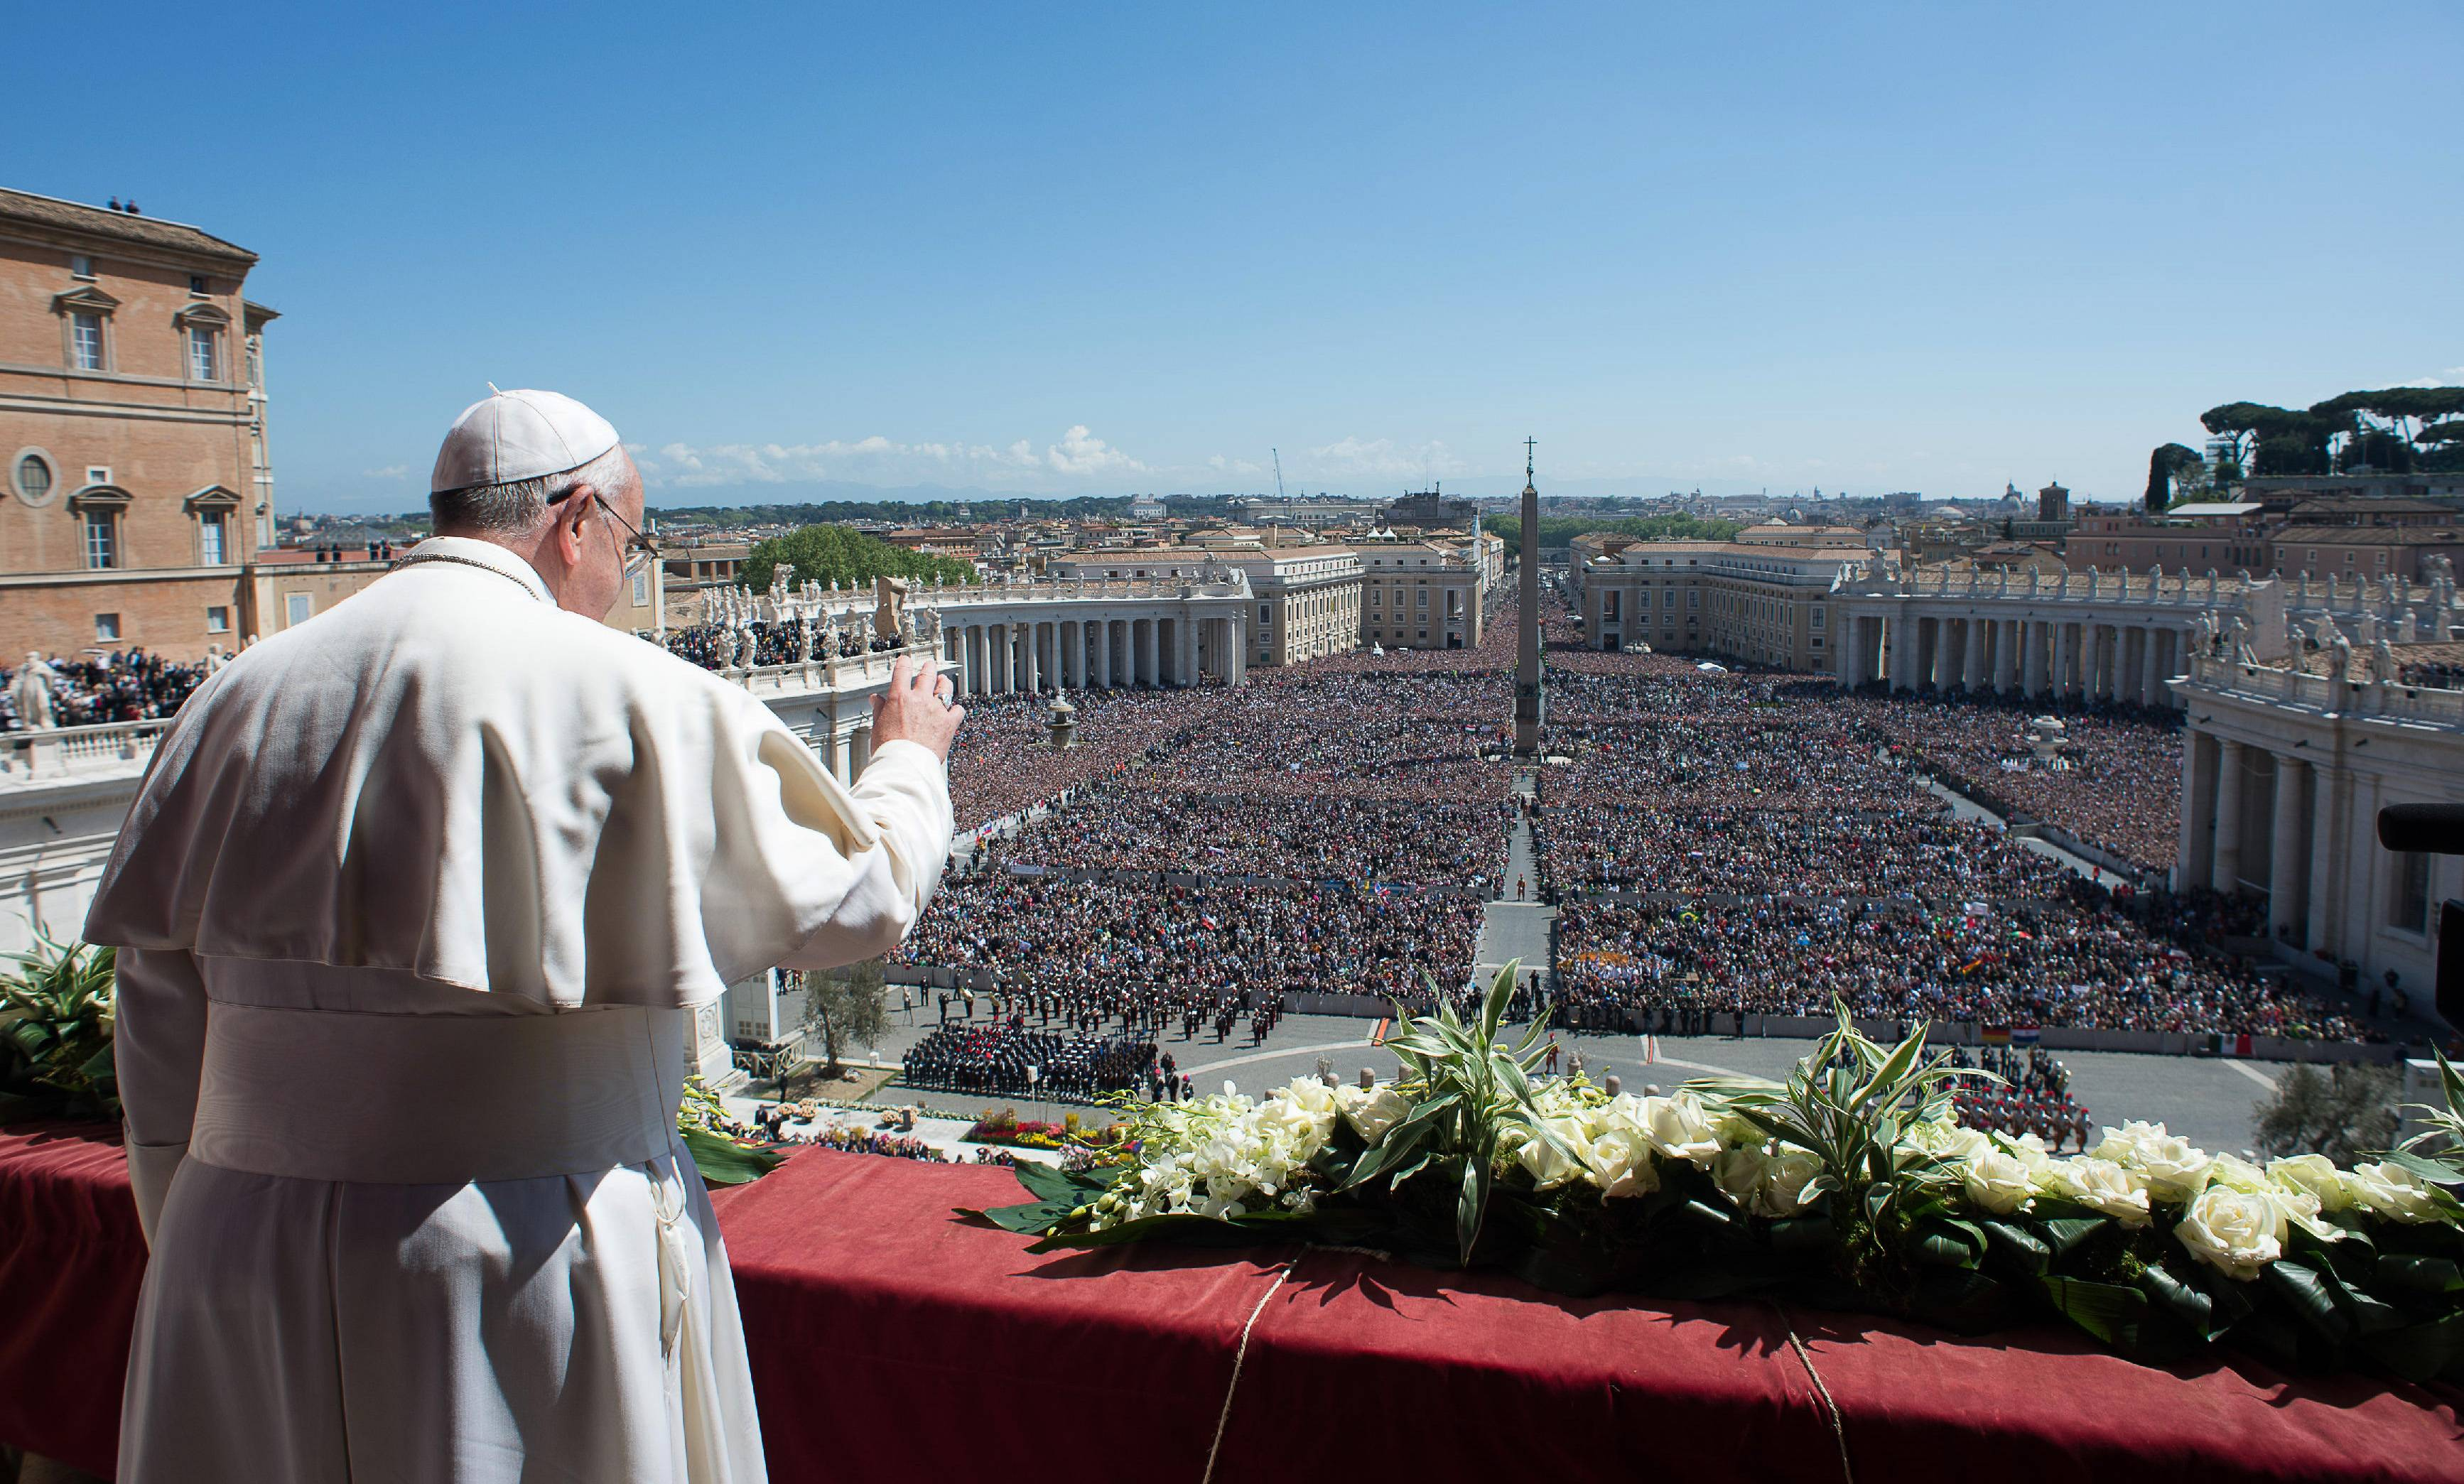 Pope Francis waves to the crowd from the balcony of St. Peter's Basilica where he delivered the Urbi et Orbi at the end of the Easter Mass in St. Peter's Square at the the Vatican Sunday.